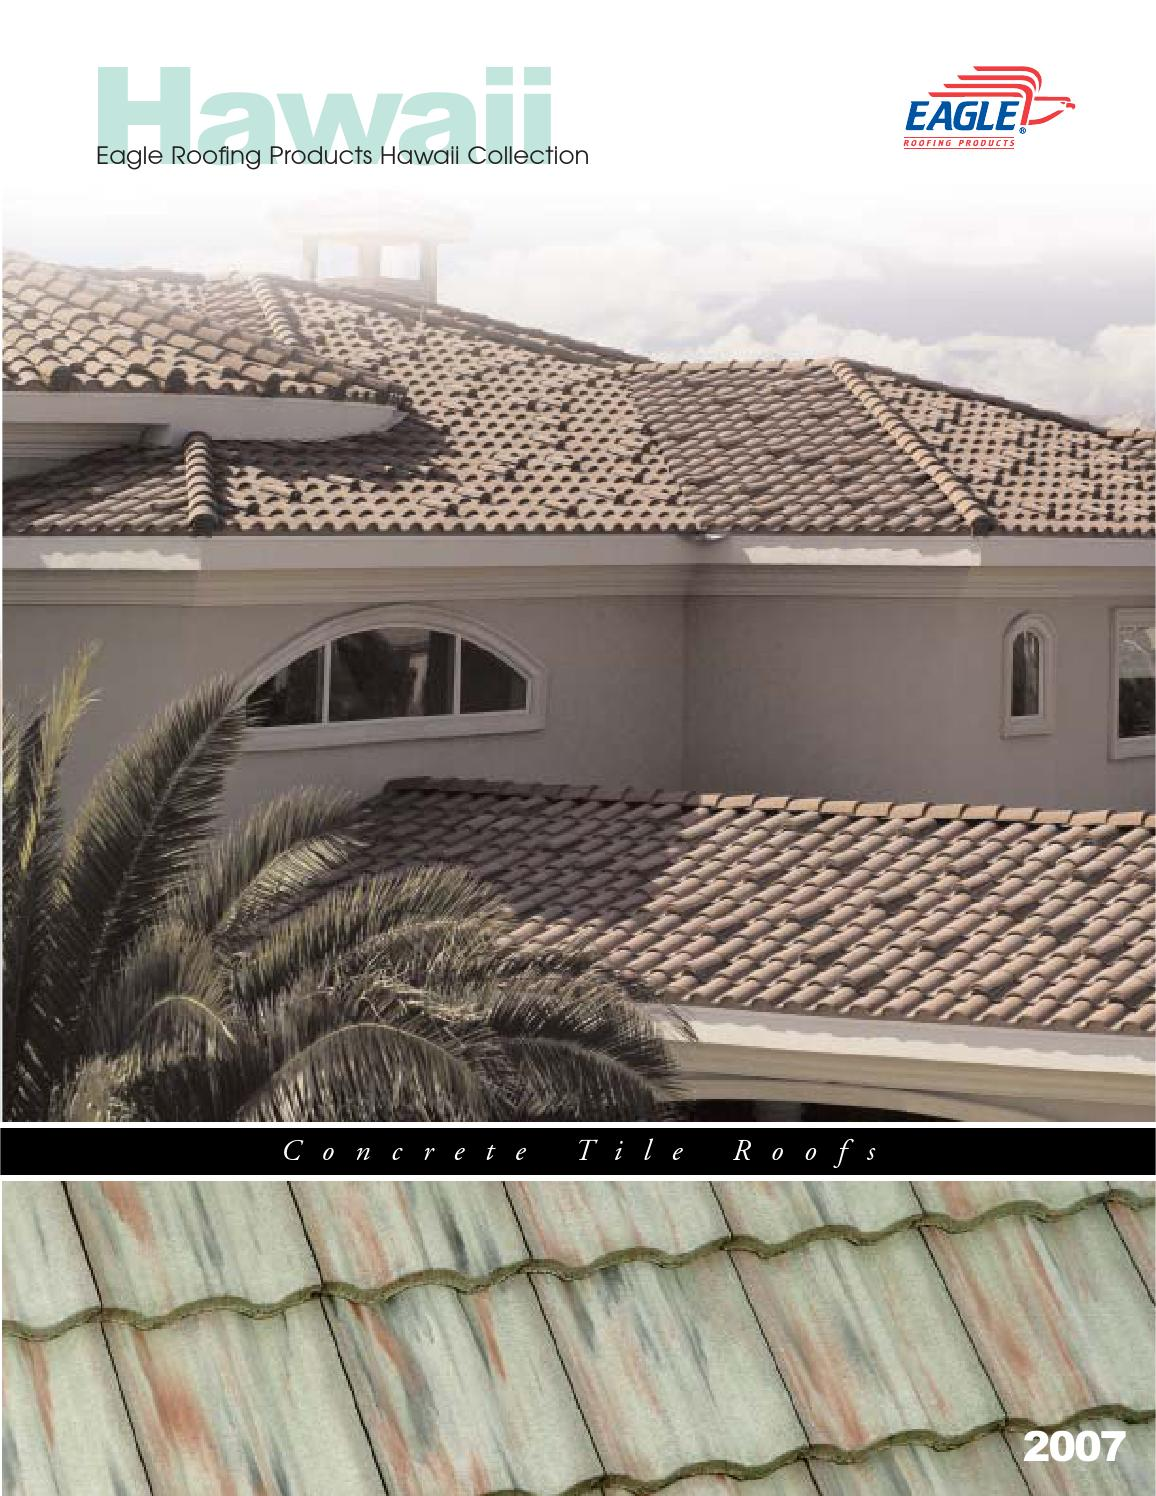 eagle roofing products hawaii